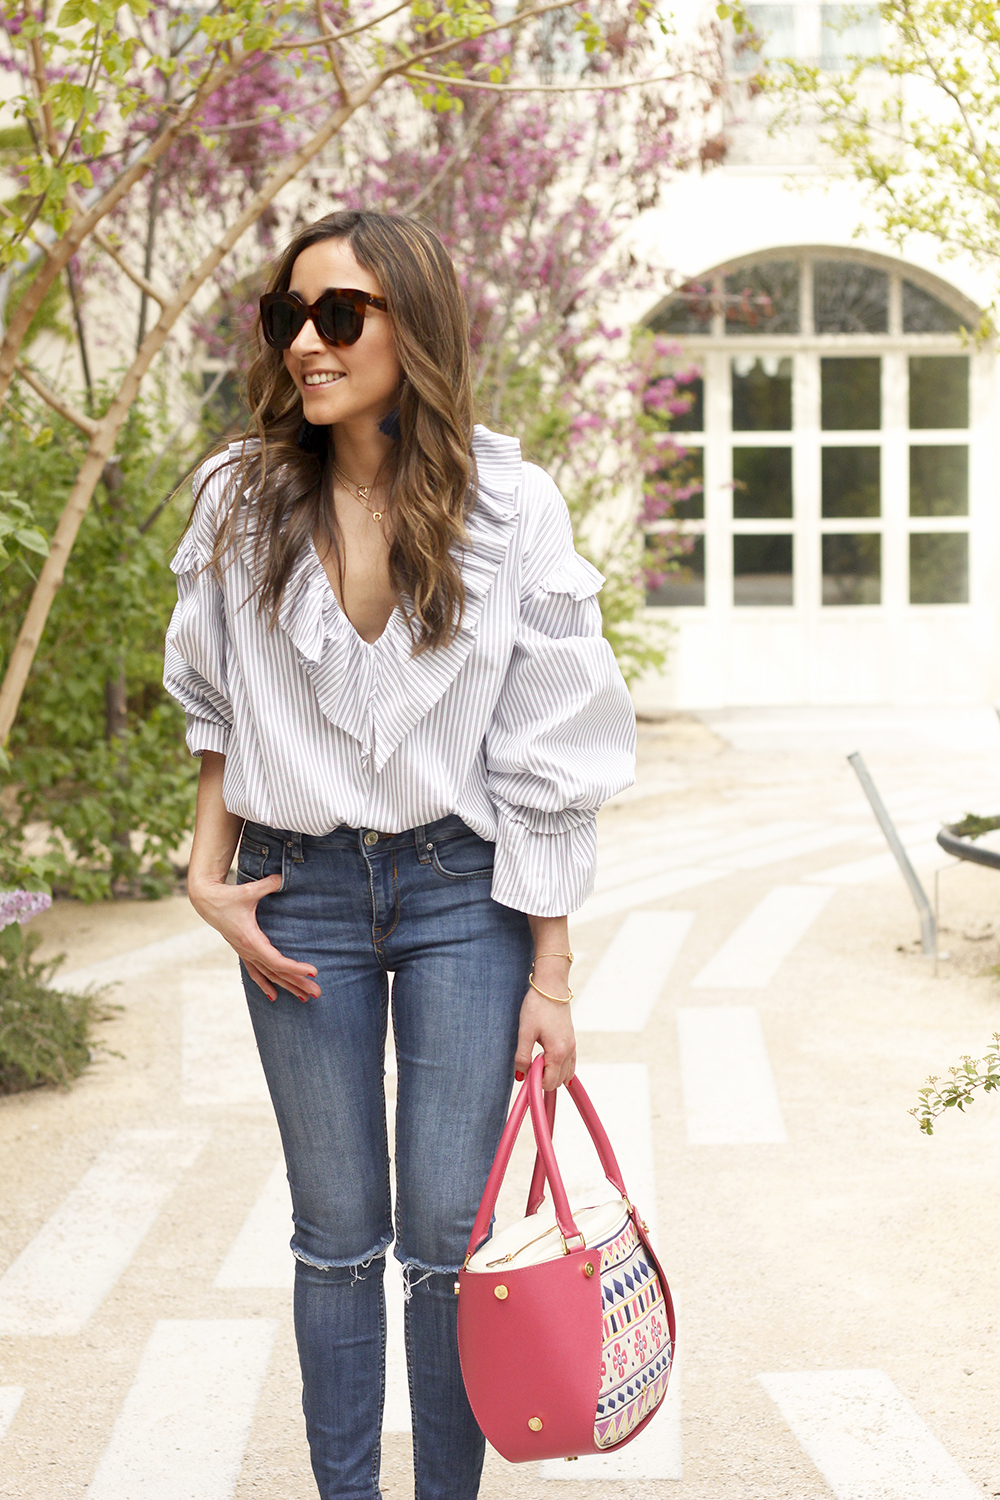 Ruffled striped shirt jeans céline sunnies sandals pamapamar bag accessories spring outfit style fashion07